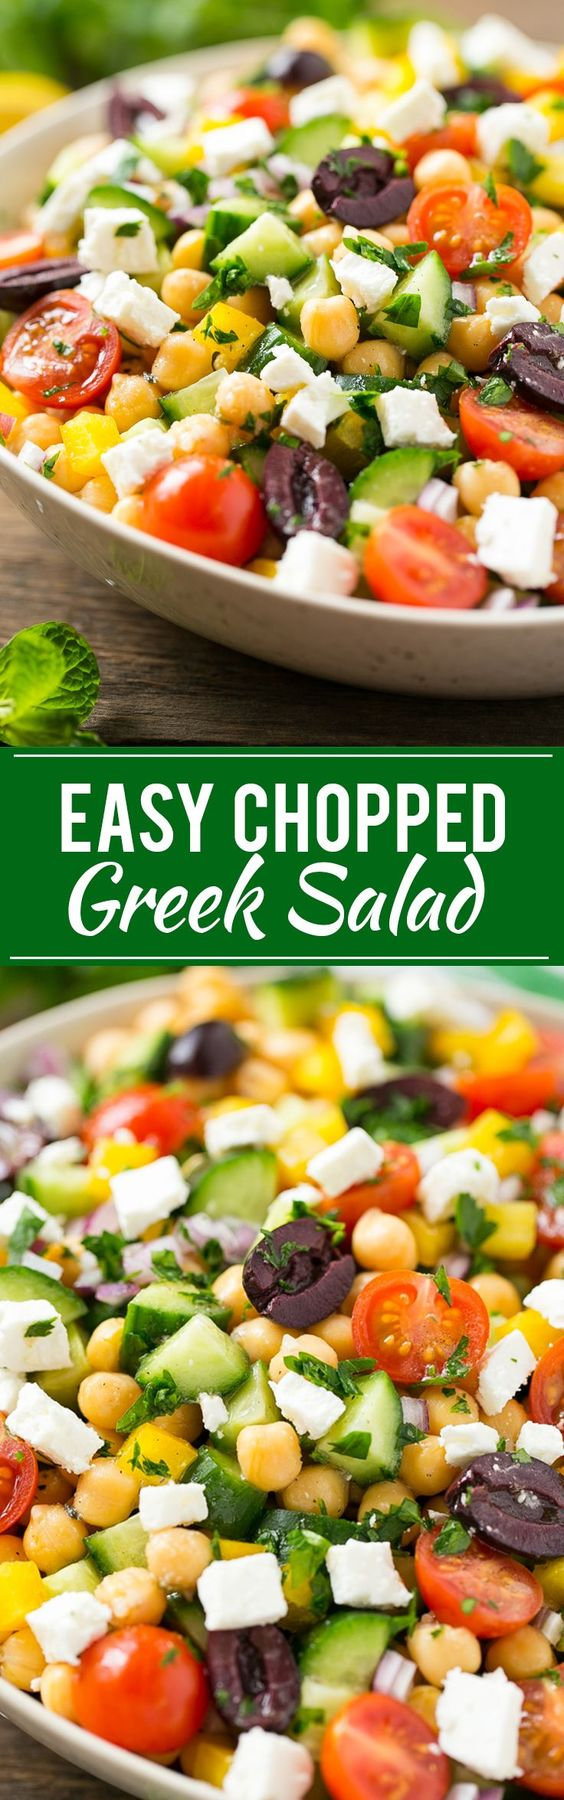 Chopped Greek Salad   Recipe   Vegetables, Awesome and ...